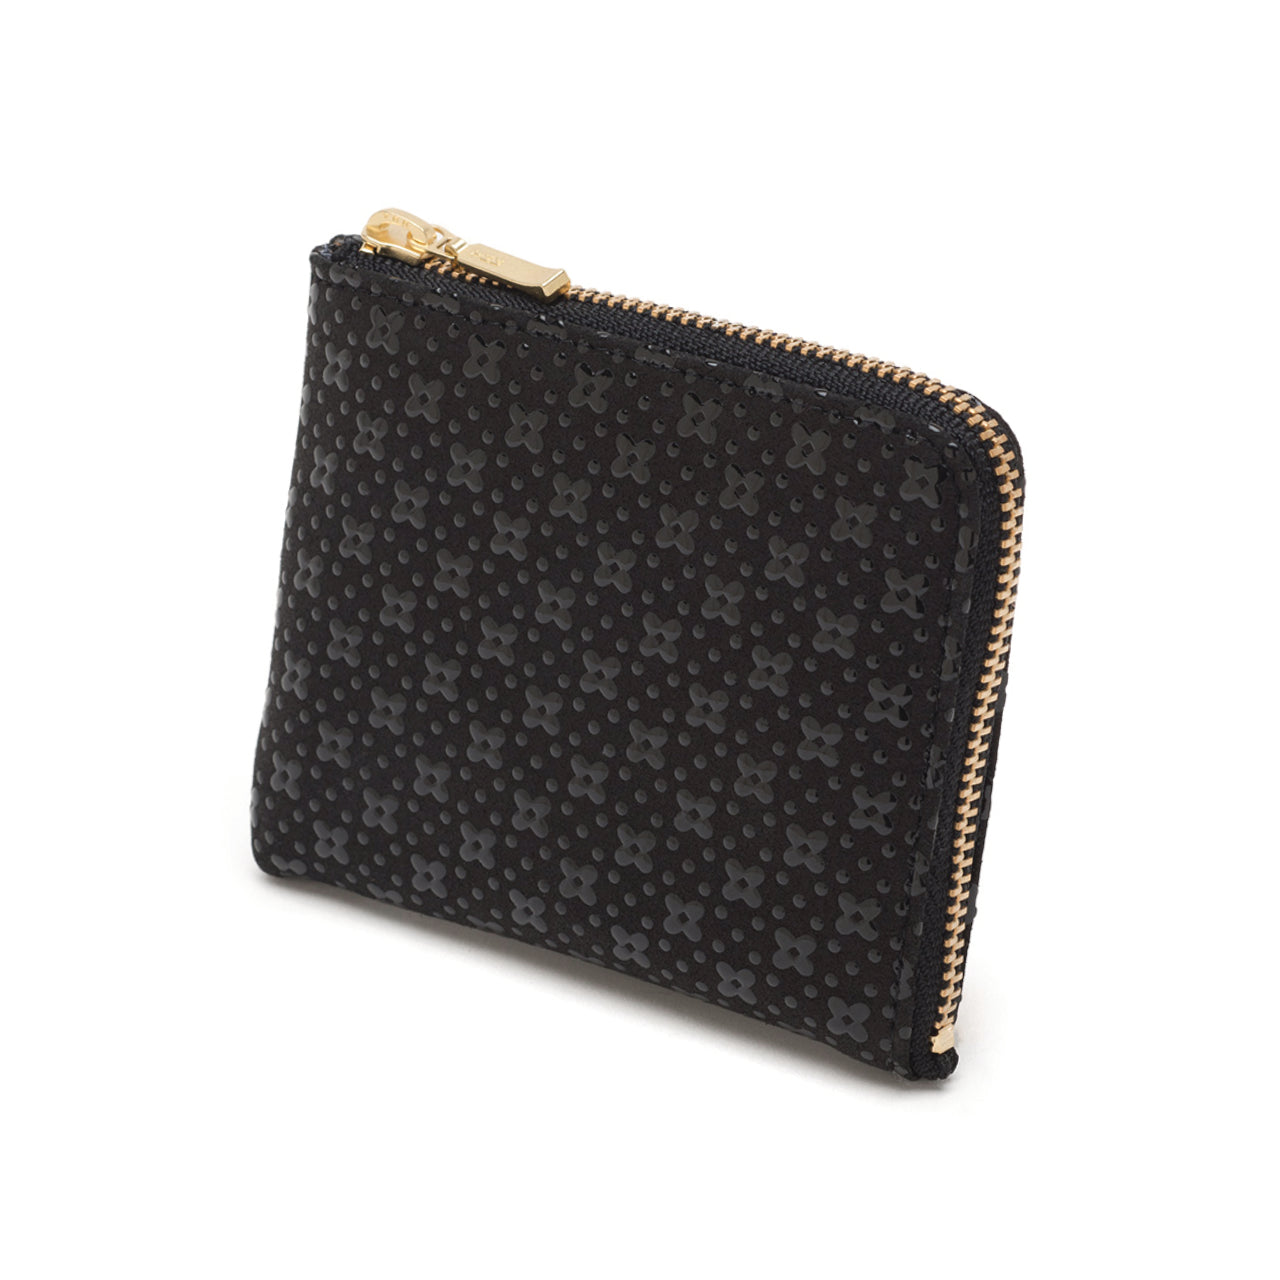 INDEN ZIPPED COIN PURSE B x B Flower Lattice